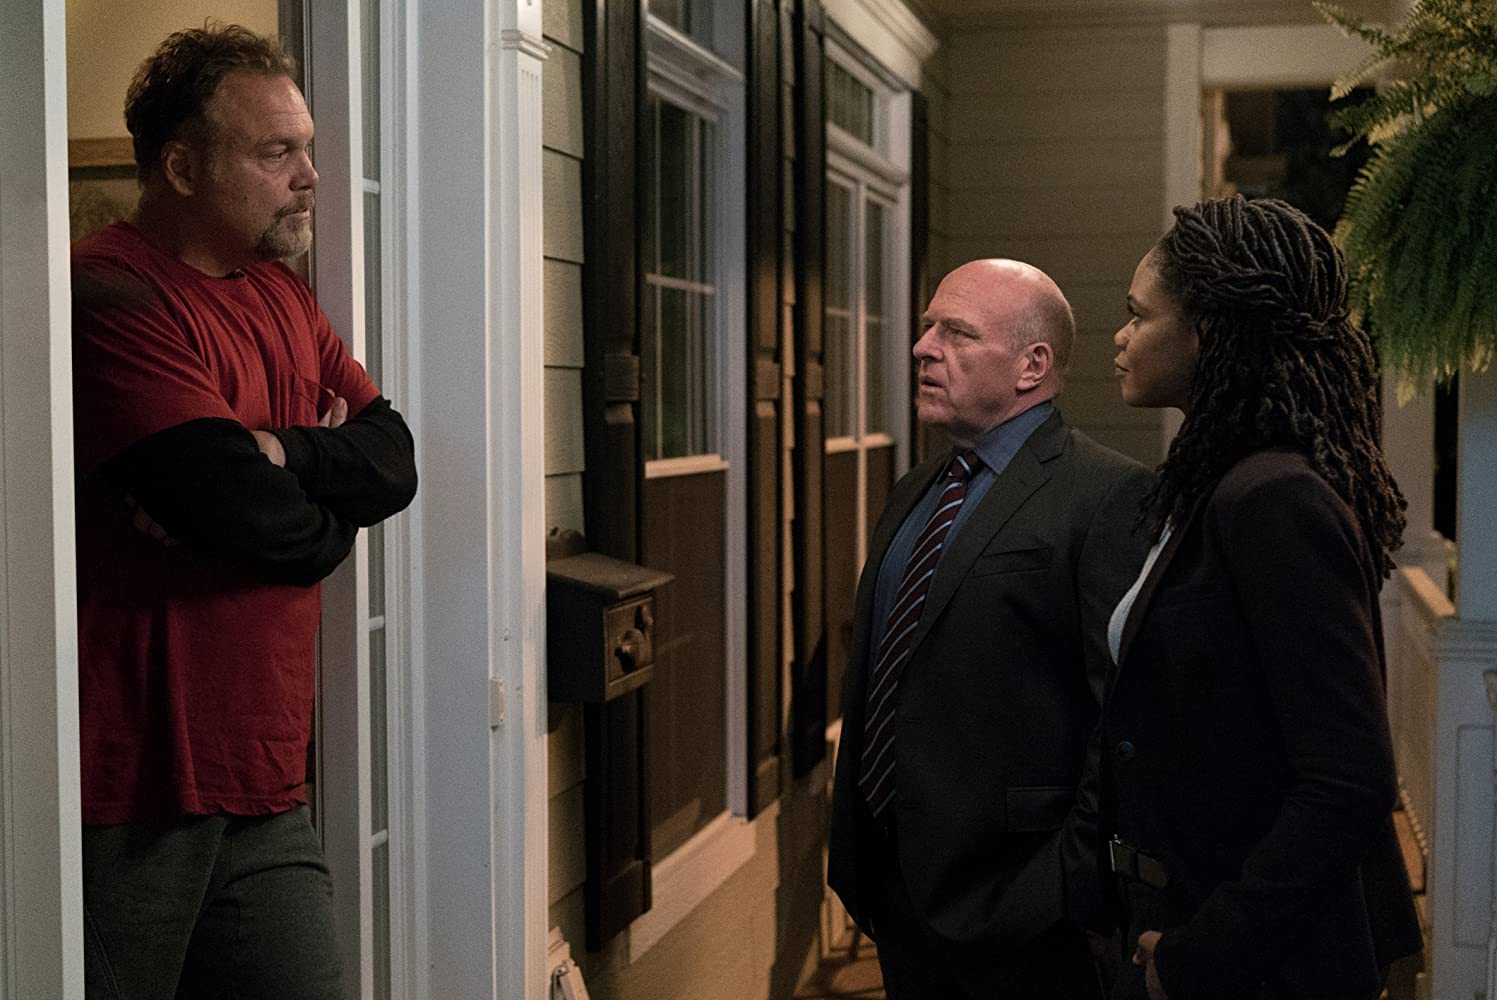 Vincent D'Onofrio, Kimberly Elise, and Dean Norris in Death Wish (2018)